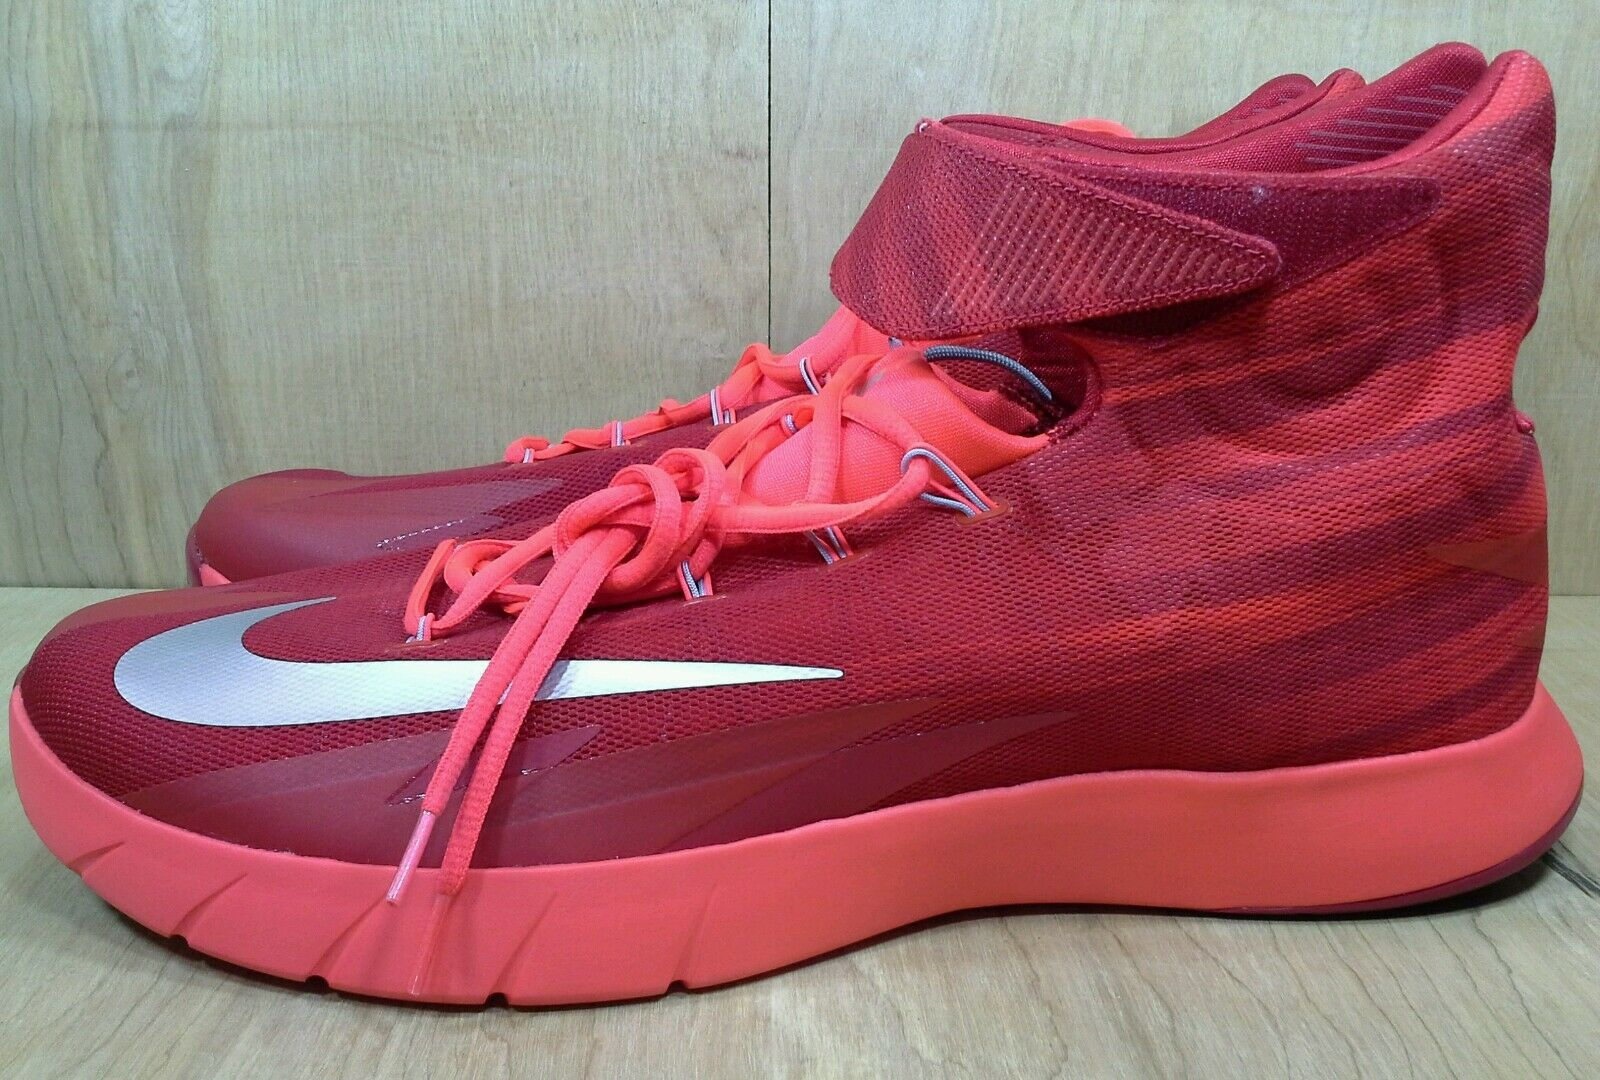 Nike Zoom Hyper Rev Basketball Shoes Mens Comfortable  Comfortable and good-looking